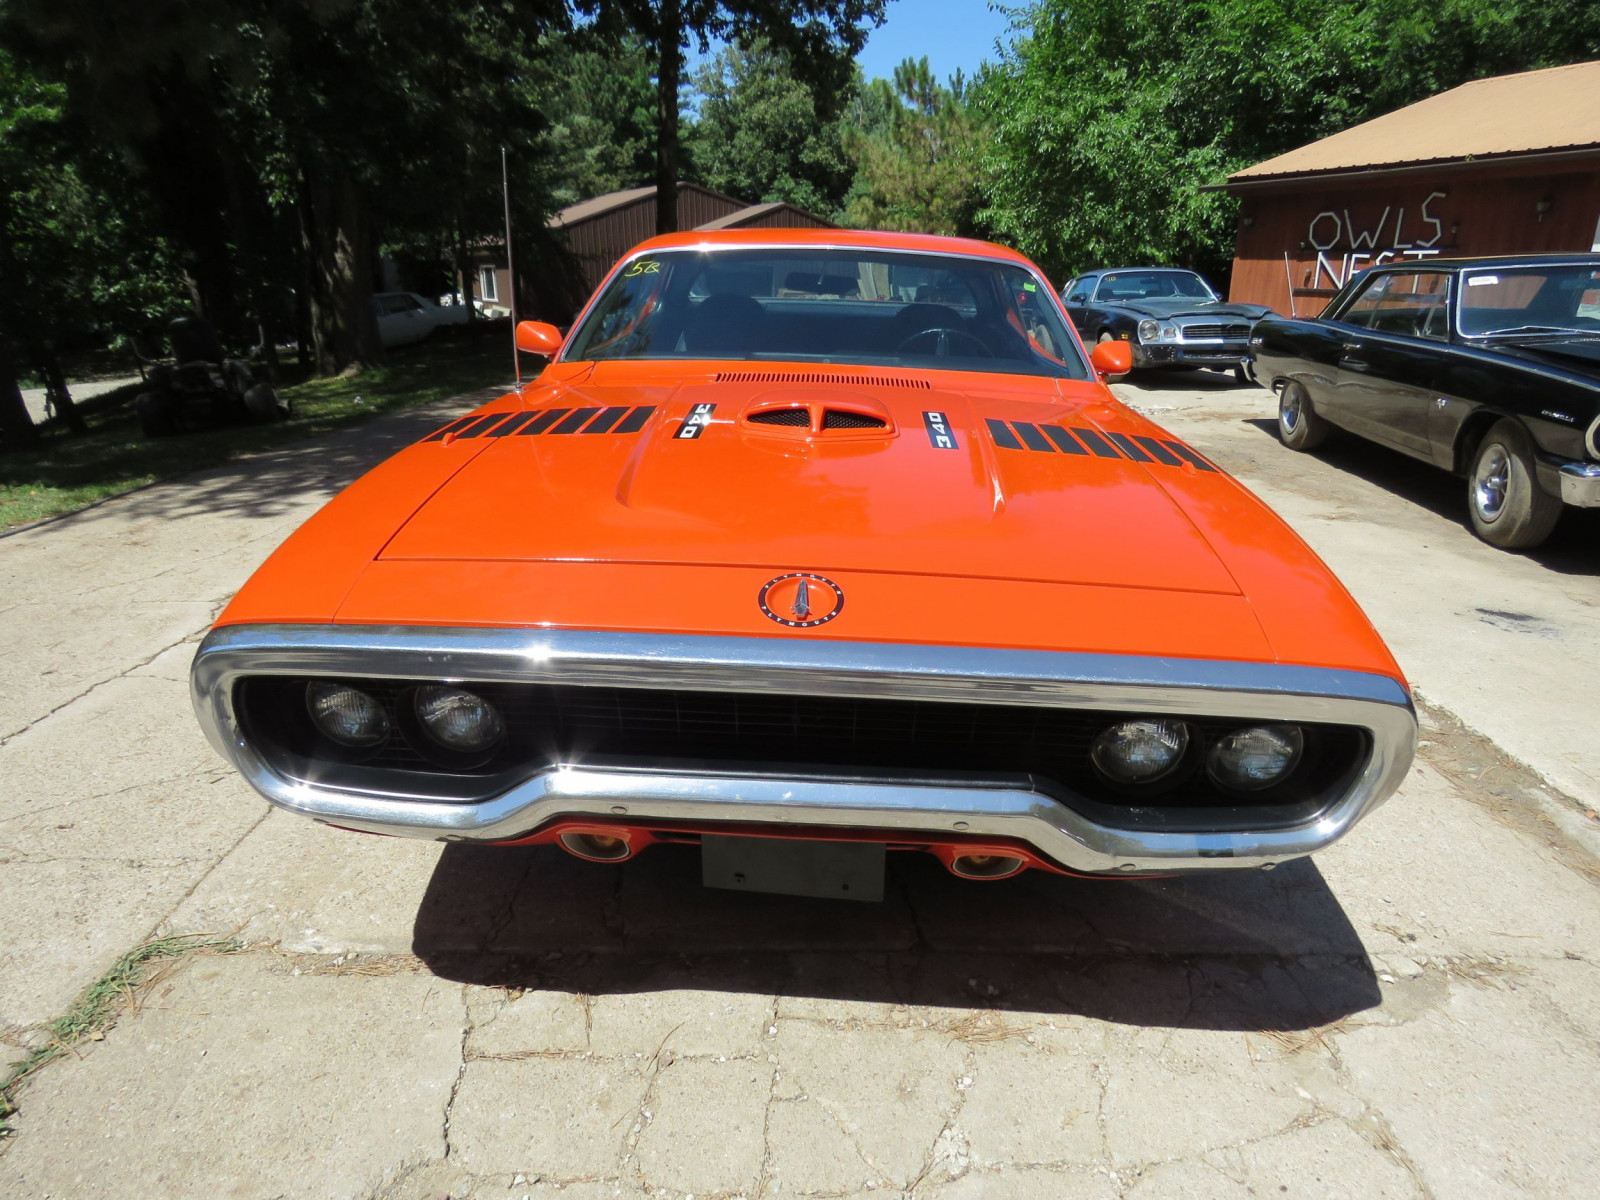 1971 Plymouth Satellite 2dr HT - Image 2